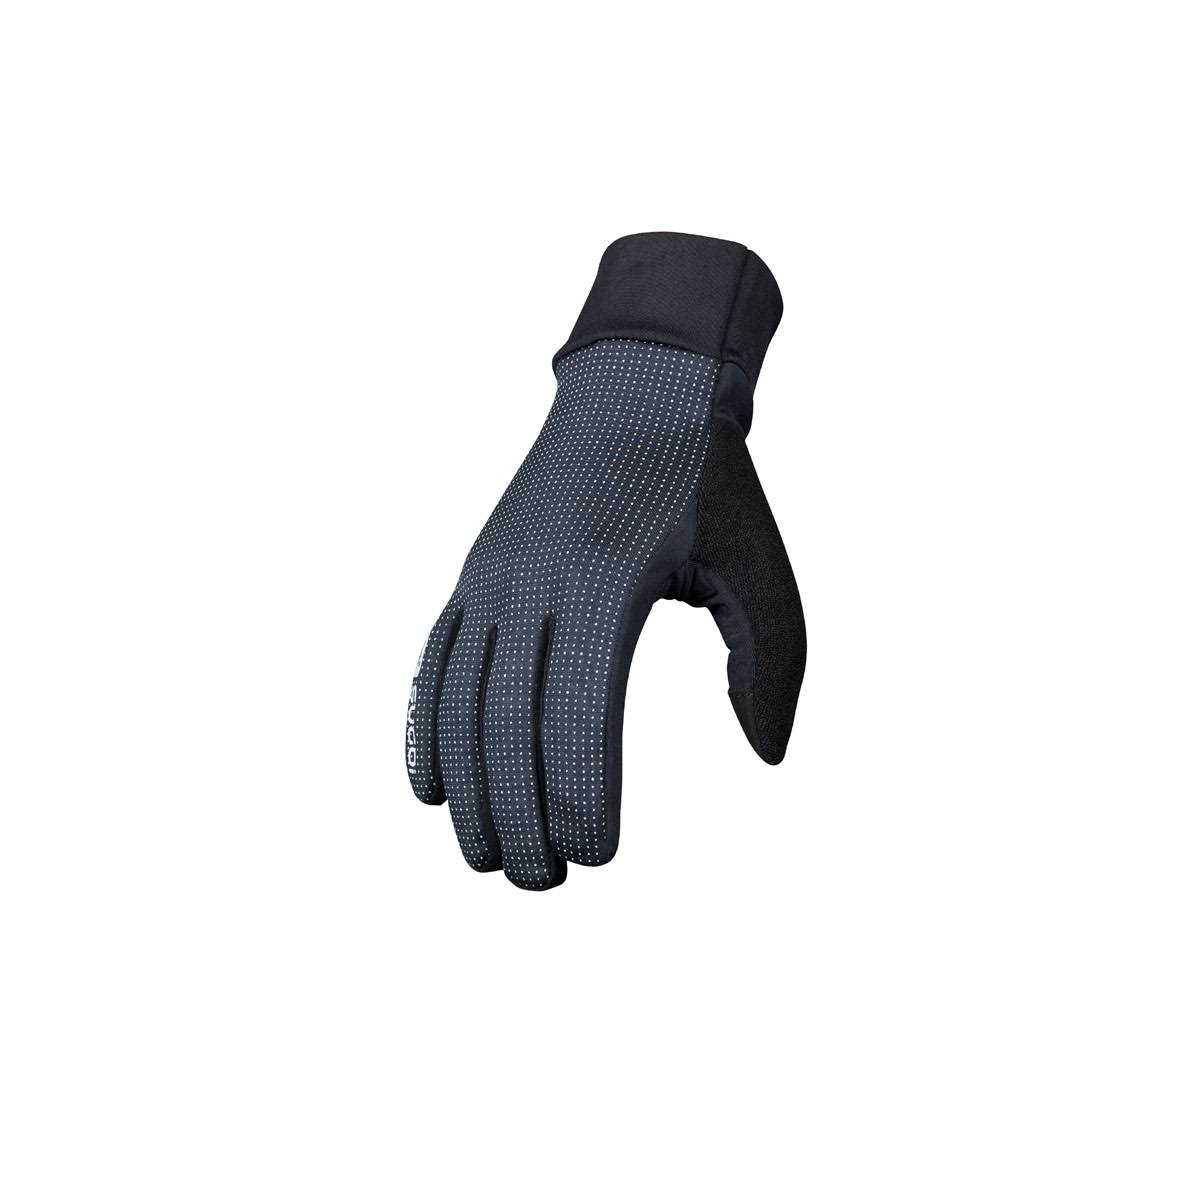 Sugoi Zap Training Glove - Black, M